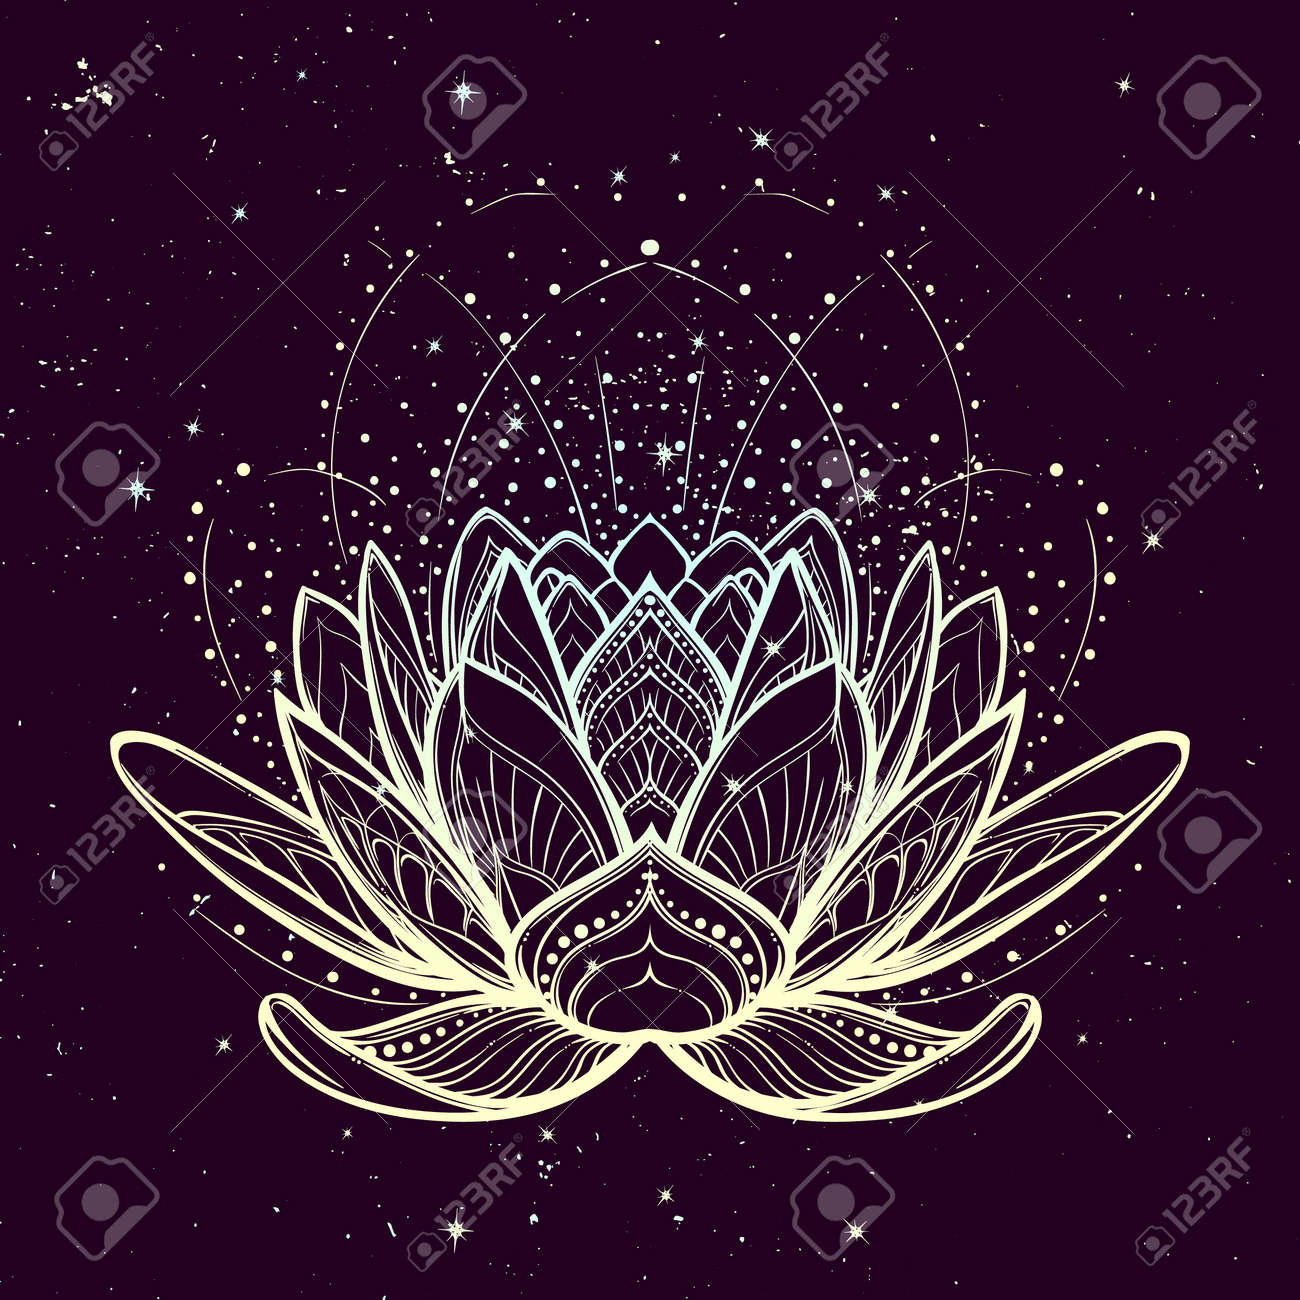 Lotus Flower Intricate Stylized Linear Drawing On Starry Nignt